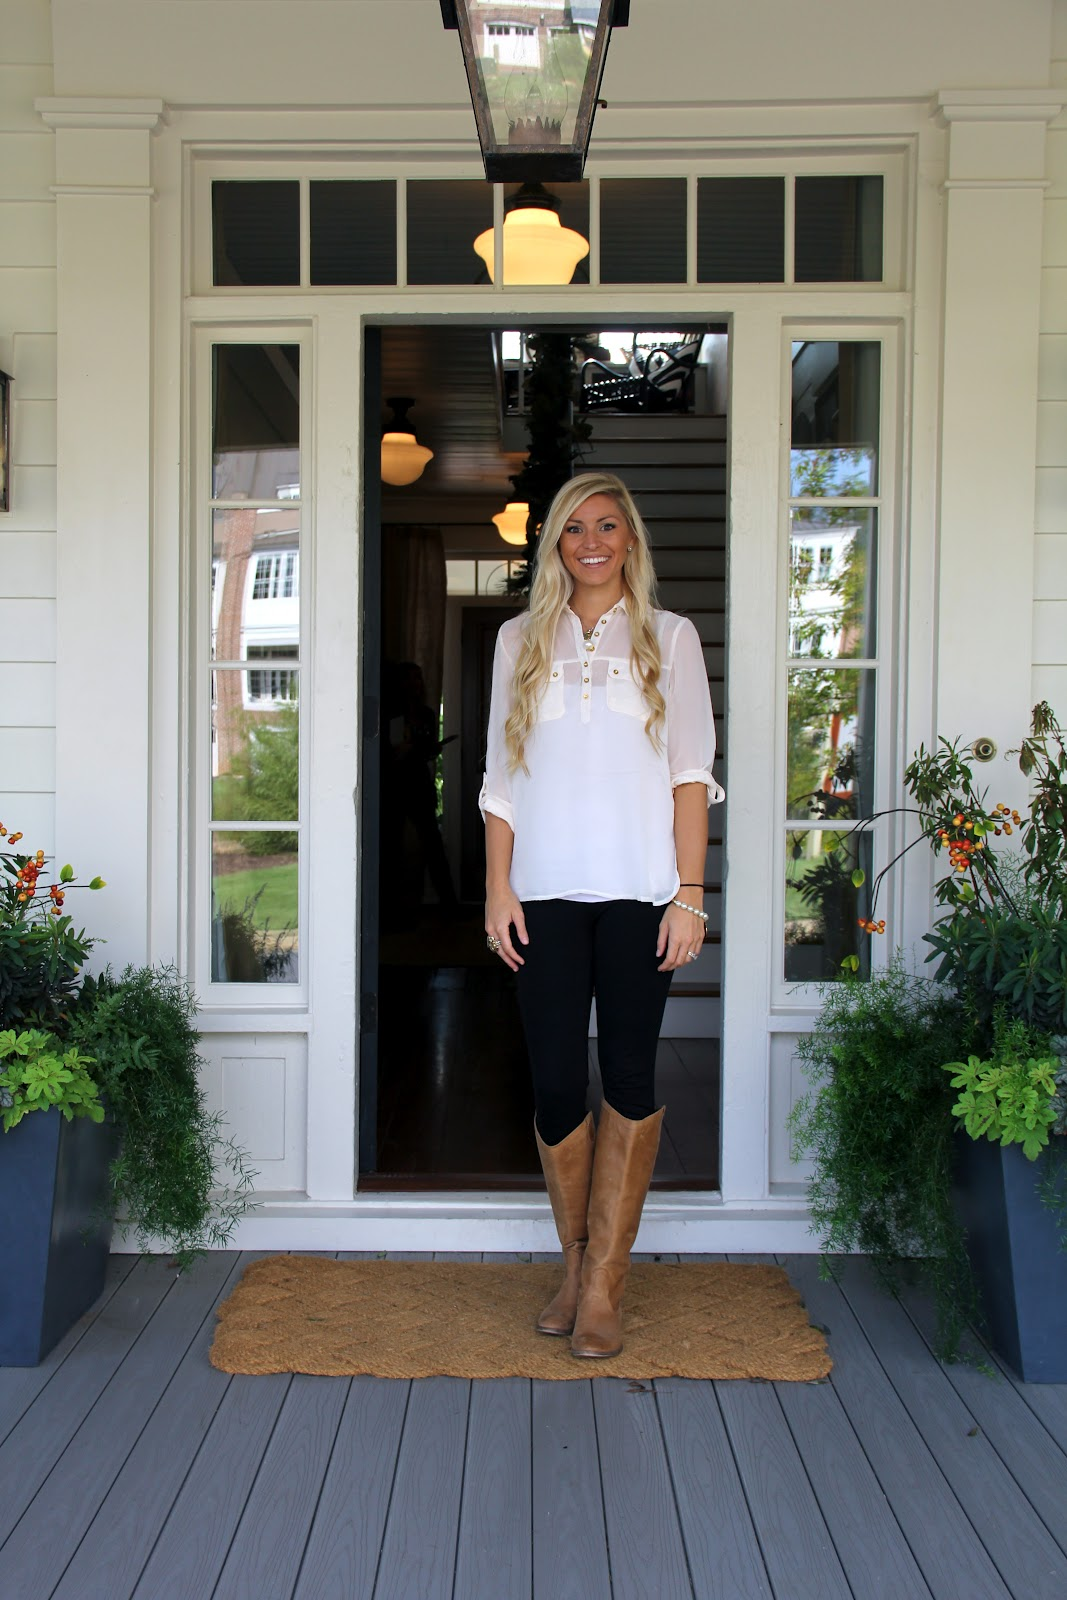 ... I Love The Mix Of The Old With The New Porch And Patio Design  Inspiration Southern Living My ...